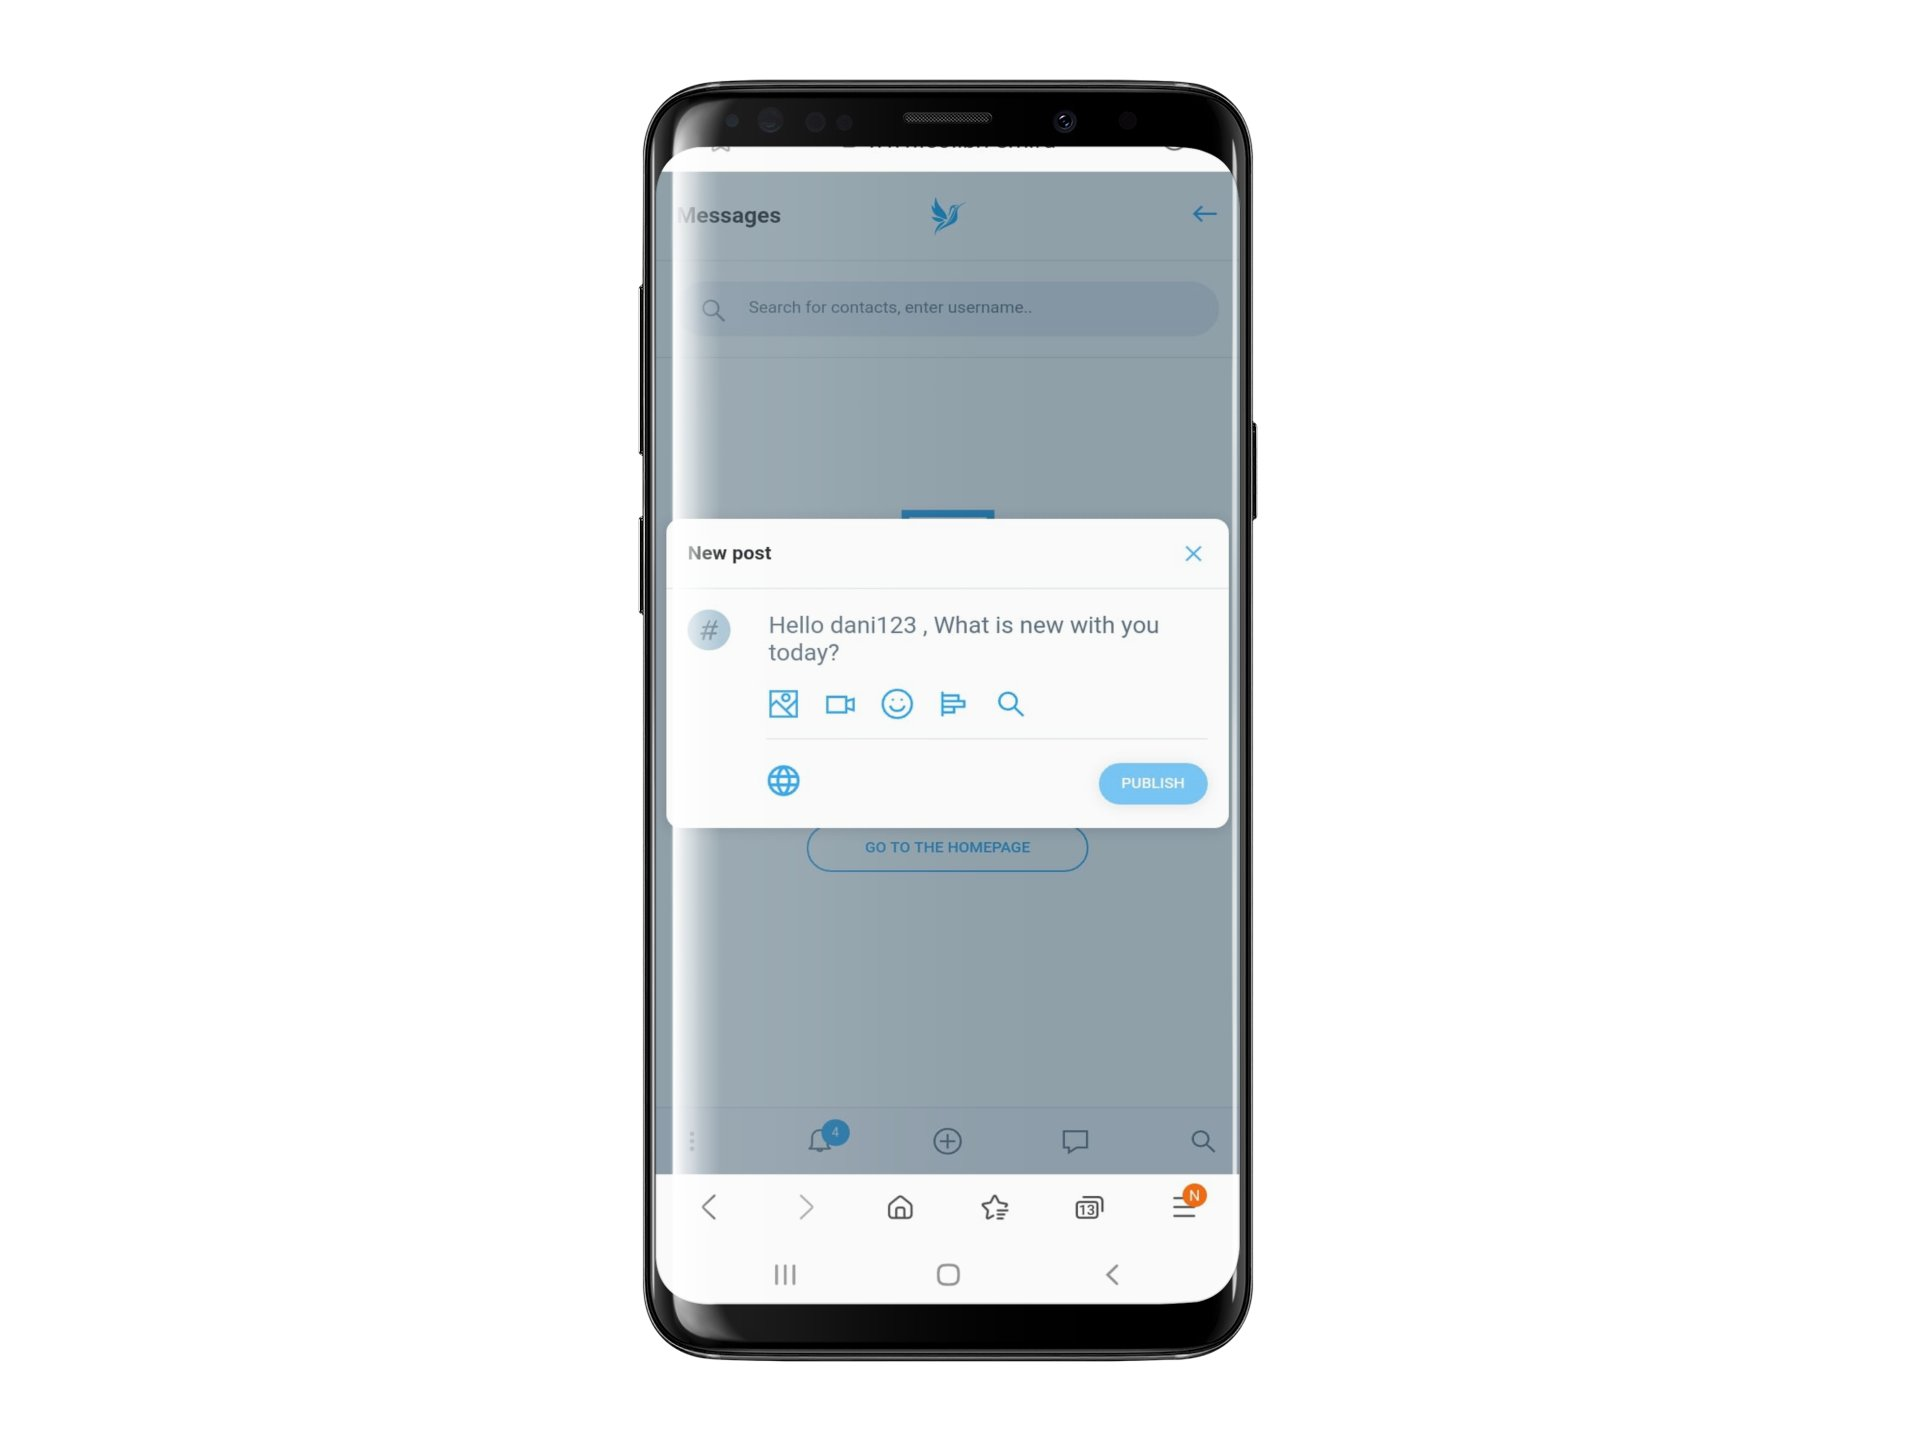 galaxy s9 mockup template against transparent background a19508 1 1 MiT Social Sharing